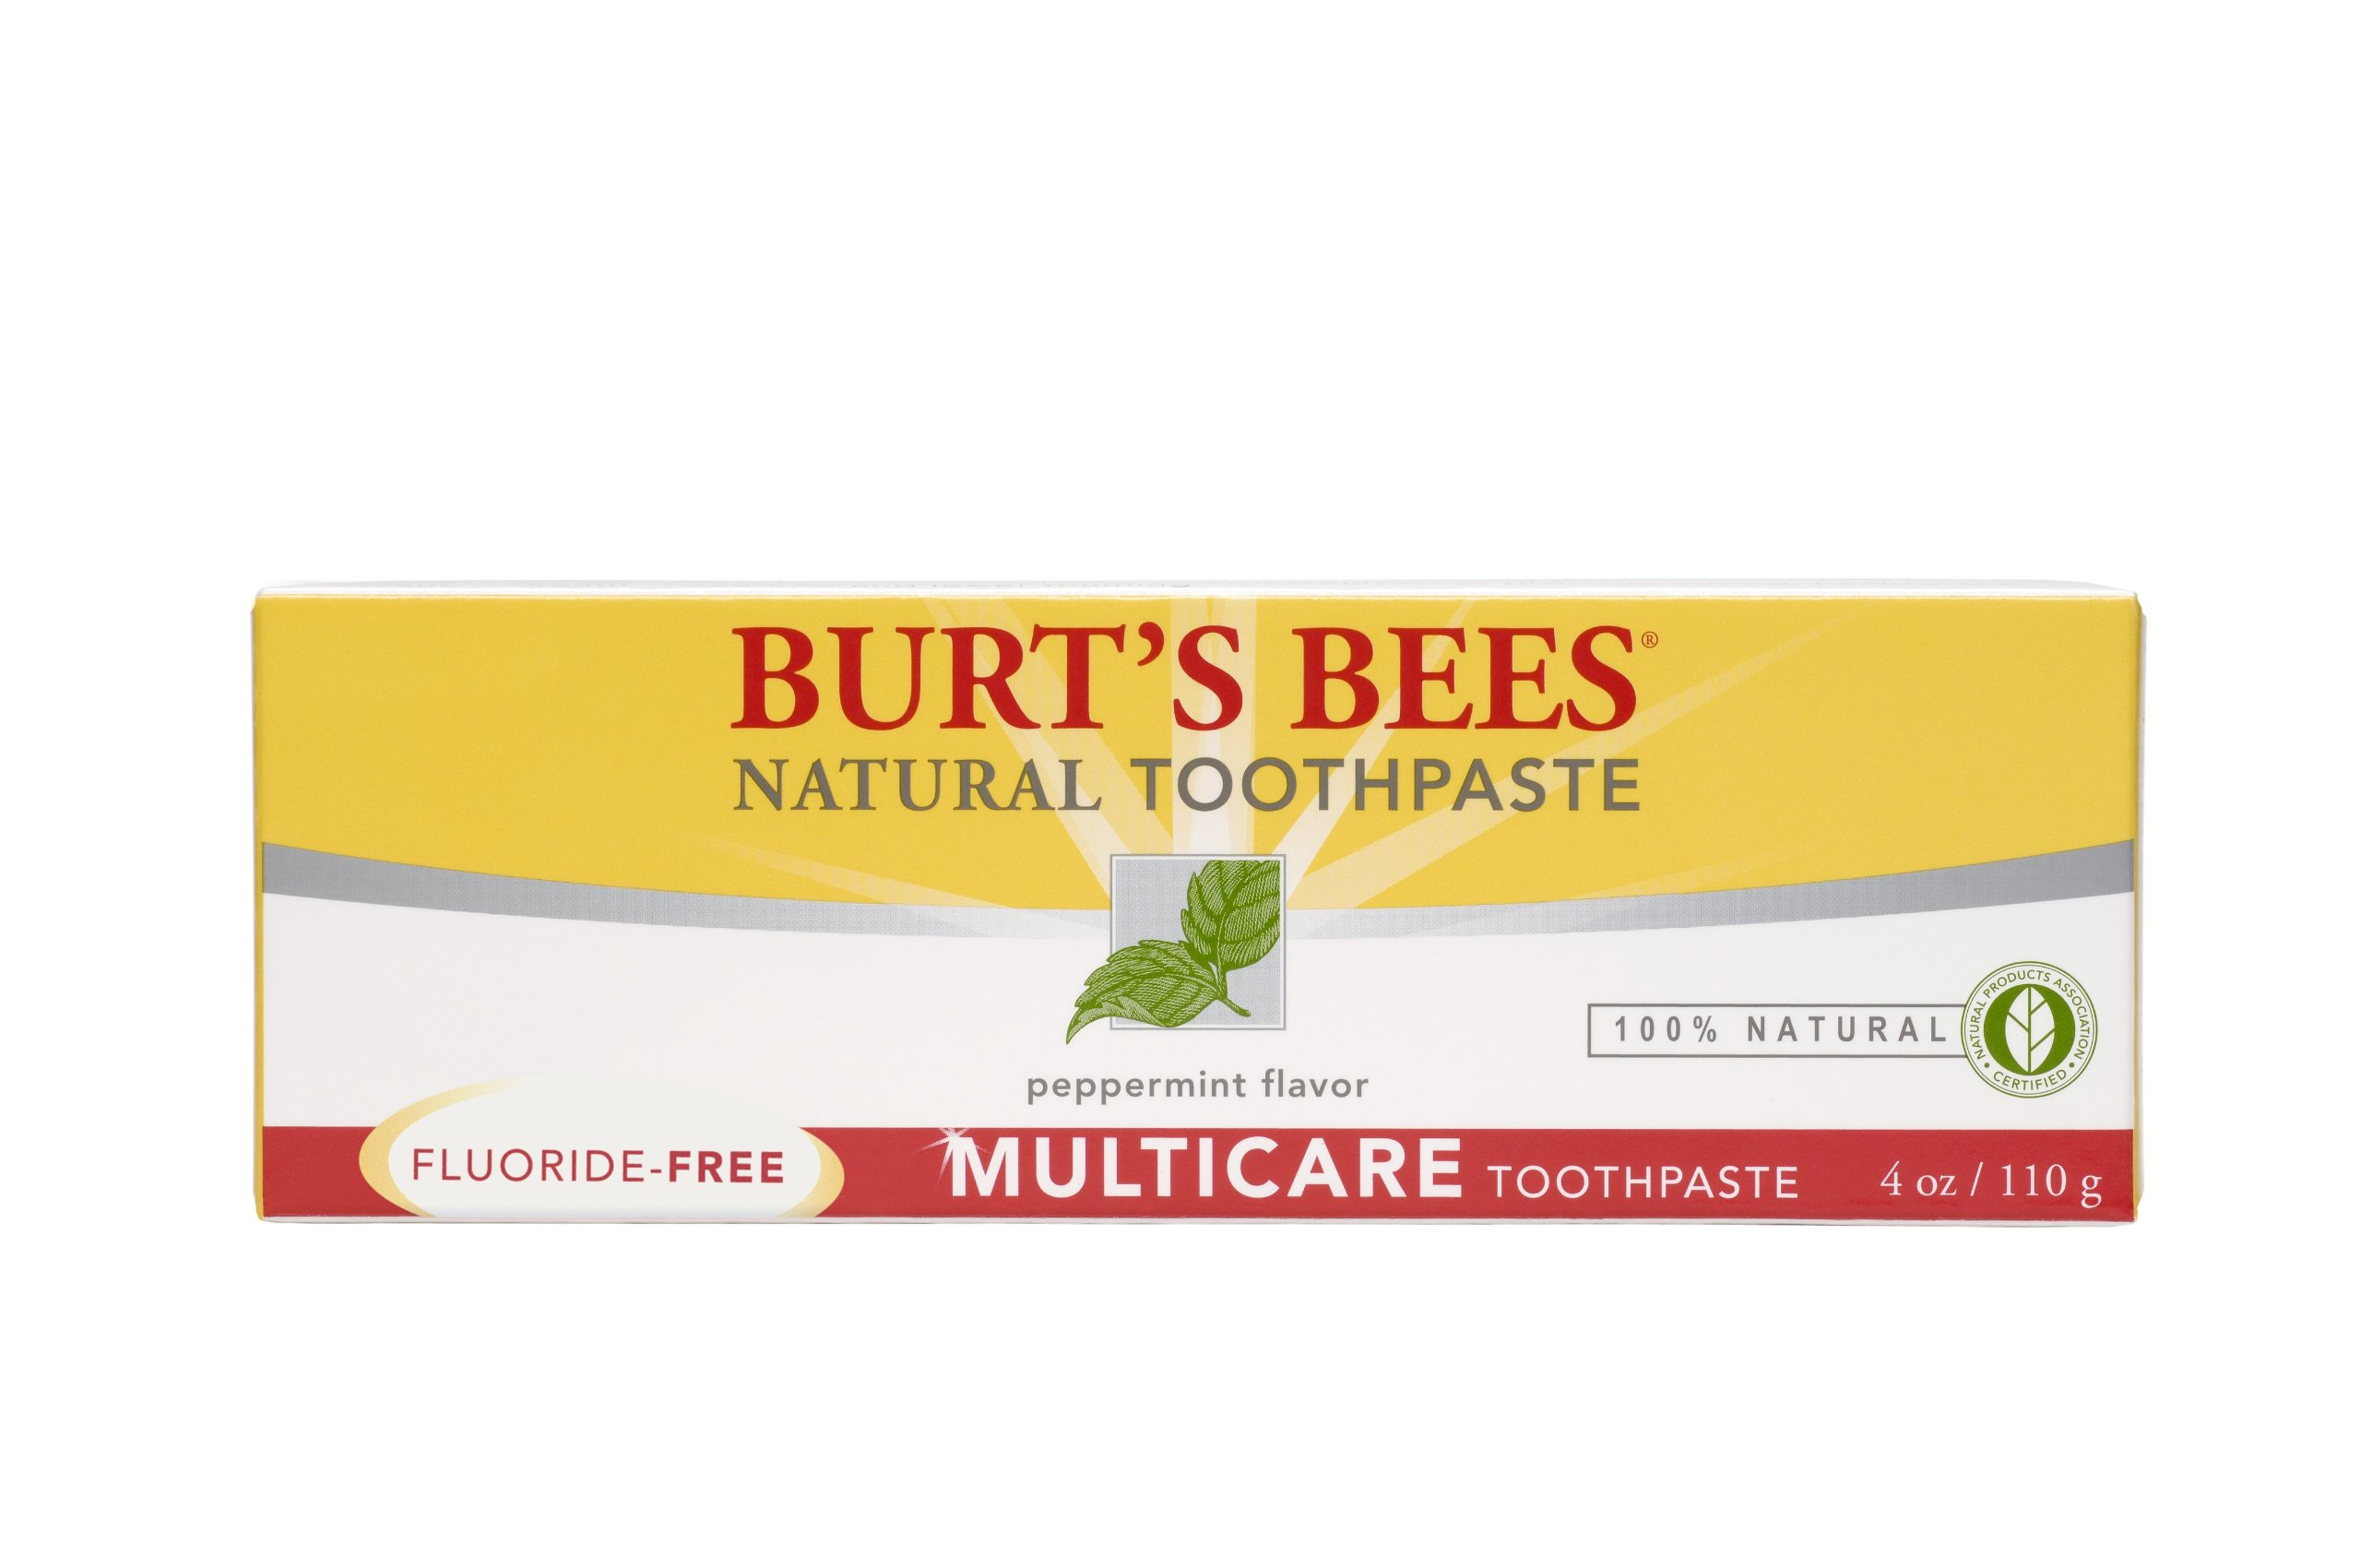 Burt's Bees Natural Toothpaste - Multicare without Fluoride, 4 Ounces (Pack of 4) by Burt's Bees (Image #1)